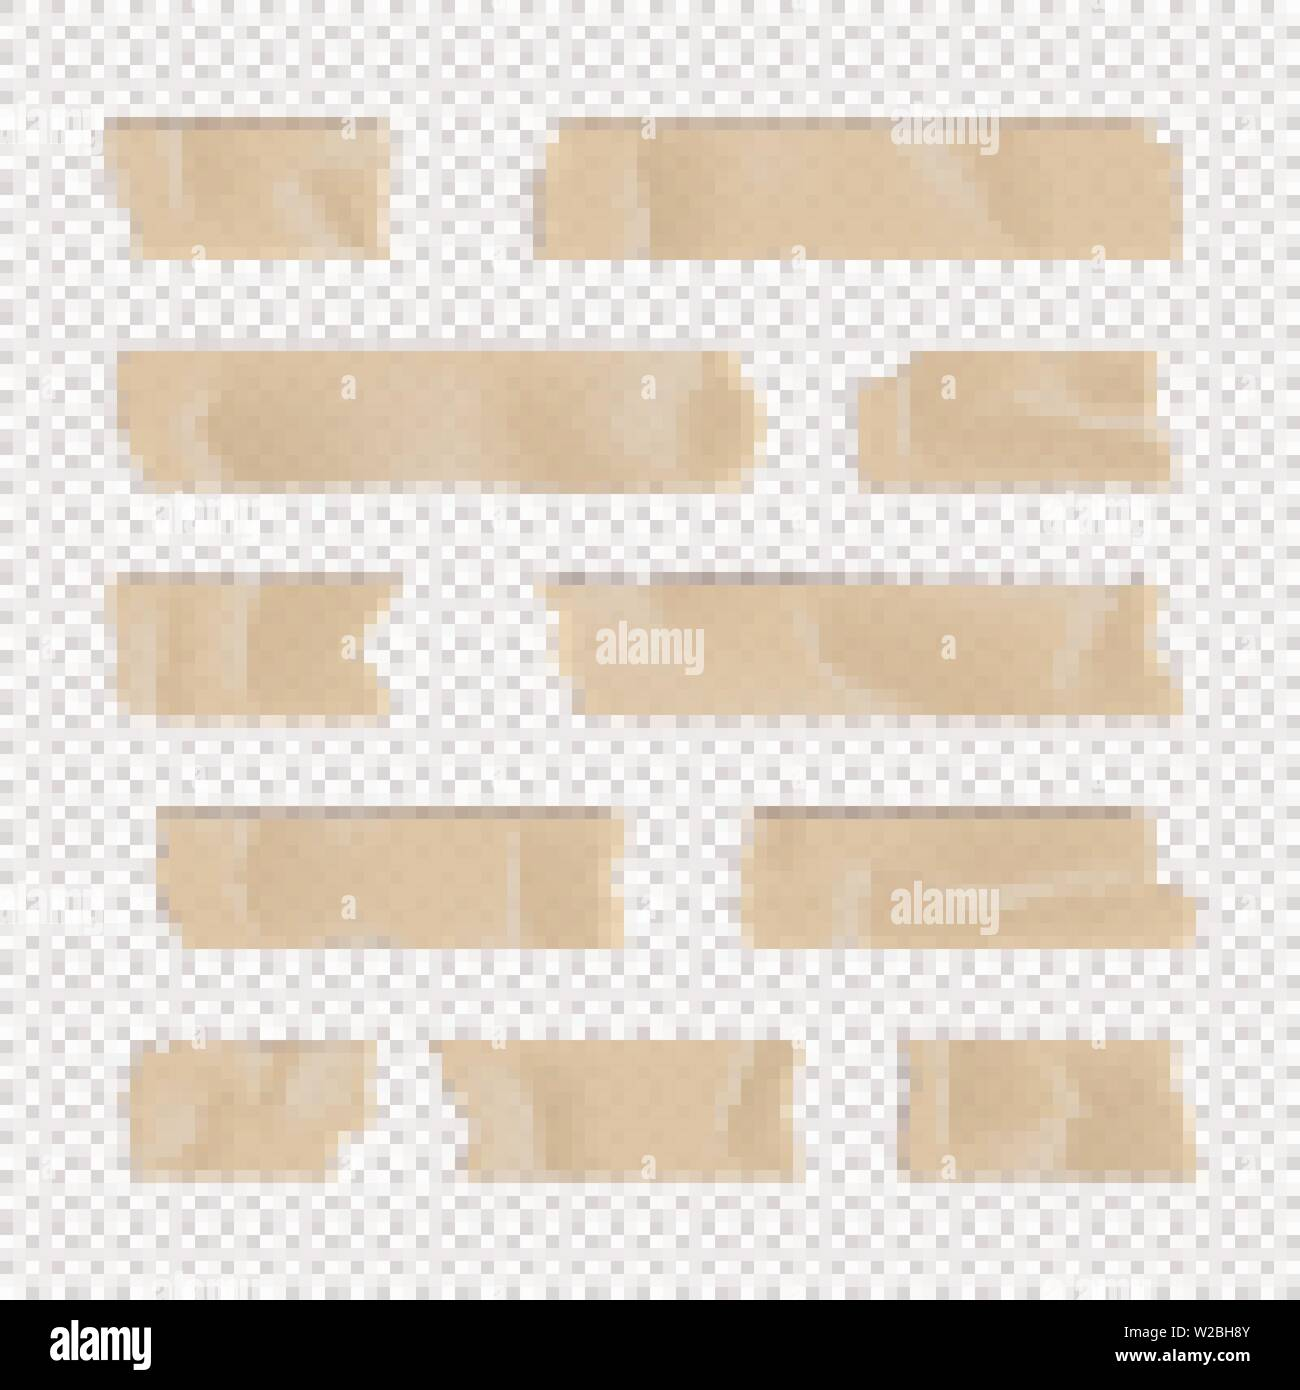 Adhesive Tape Set Sticky Paper Strip Isolated On